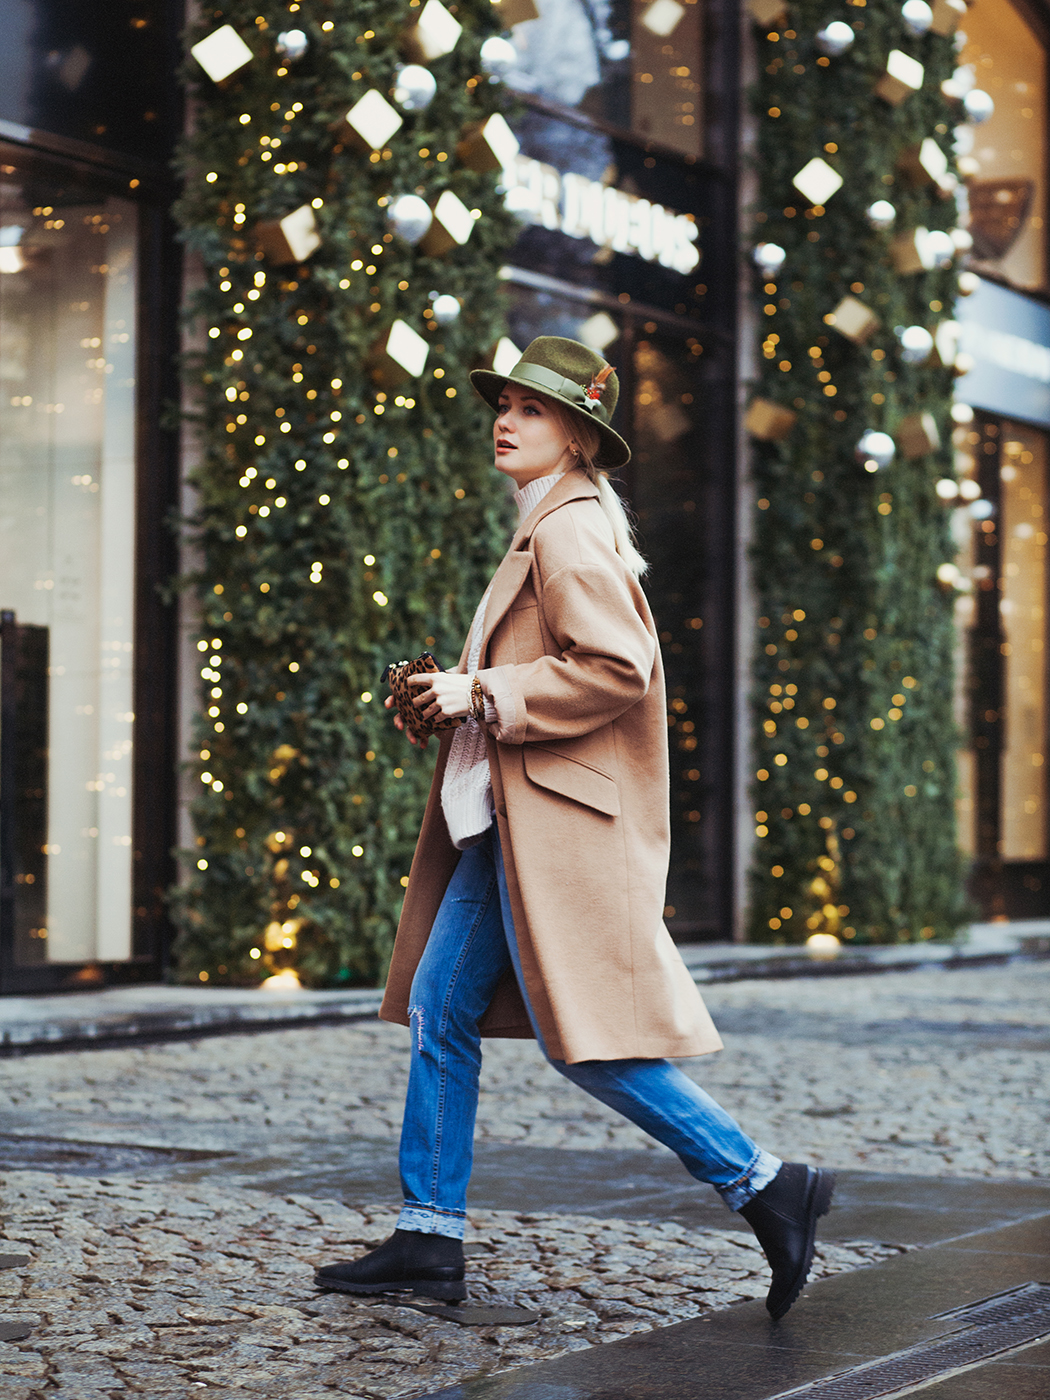 inspiration, streetstyle, autumn outfit, autumn streetstyle, moscow fashion week, annamidday, top fashion blogger, top russian fashion blogger, фэшн блогер, русский блогер, известный блогер, топовый блогер, russian bloger, top russian blogger, streetfashion, bobbi brown, lipstick, помады бобби браун, russian fashion blogger, blogger, fashion, style, fashionista, модный блогер, российский блогер, ТОП блогер, ootd, lookoftheday, look, популярный блогер, российский модный блогер, annamidday, russian girl, с чем носить бежевое пальто,  girly, how to wear hat, beige coat, красивая девушка, русская девушка, fashion week